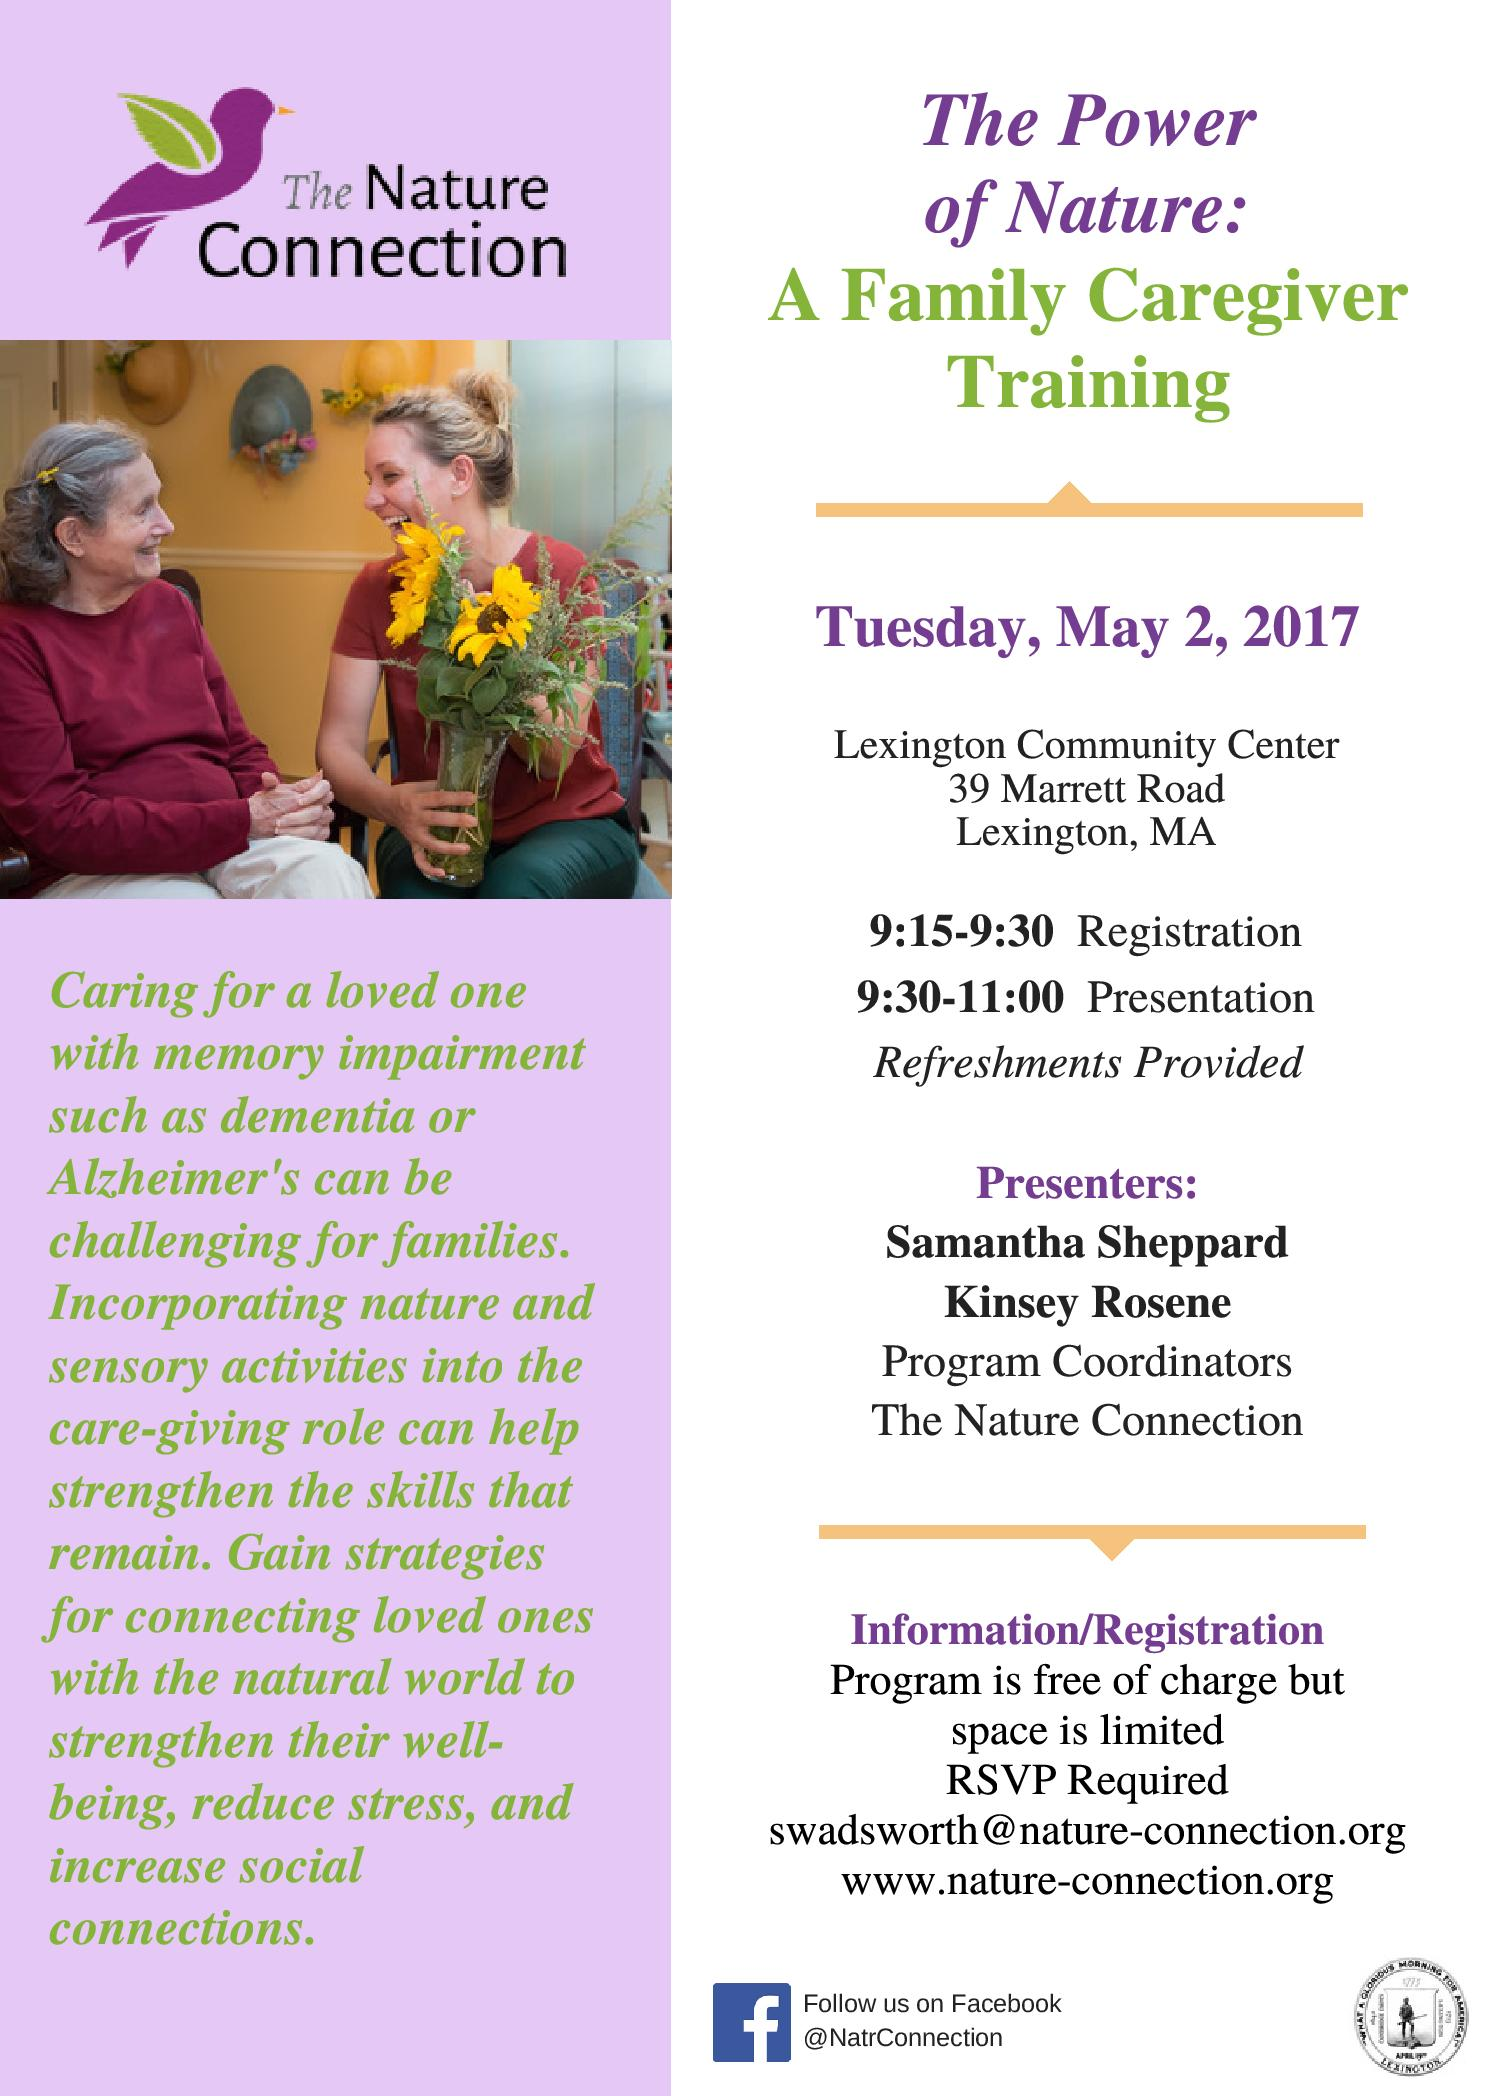 Family Caregiver Training FLYER 5 2 2017-page-001   The Nature